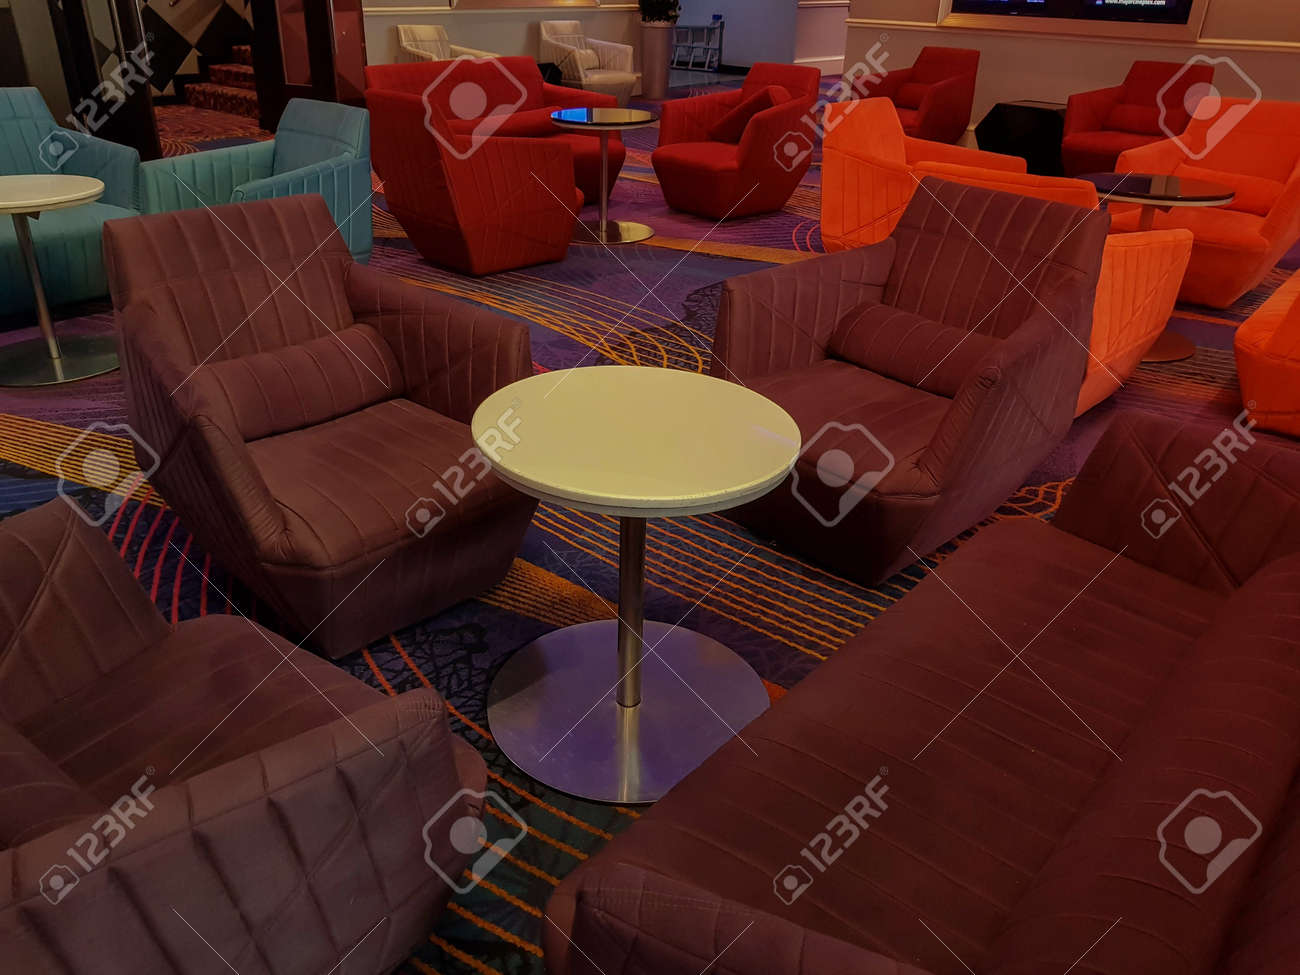 The image is dark and light, furnished with beautiful colors